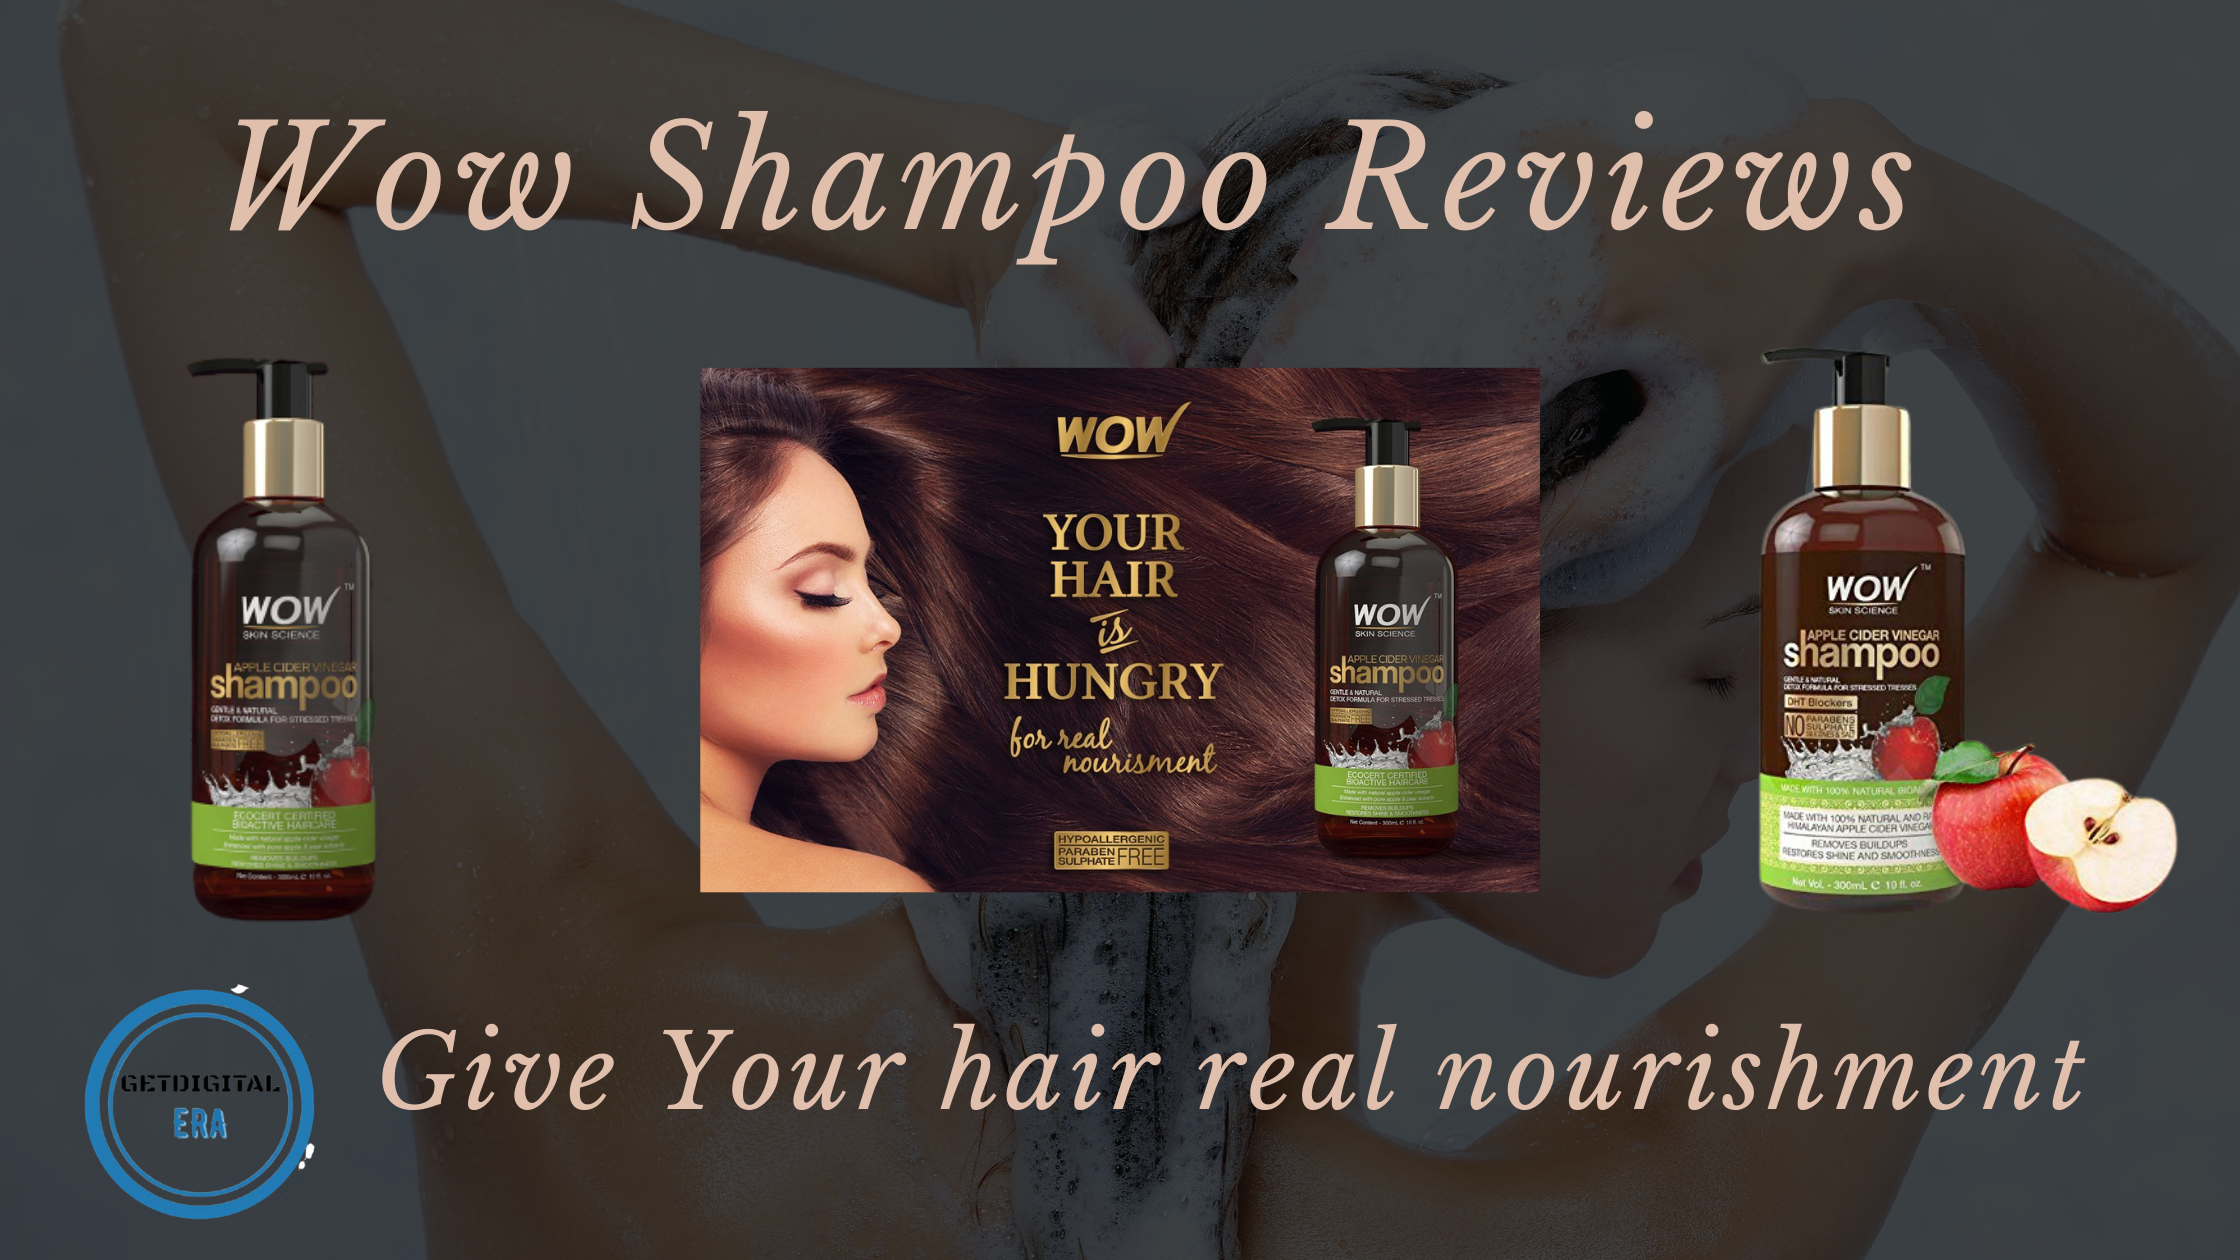 Wow Shampoo Reviews